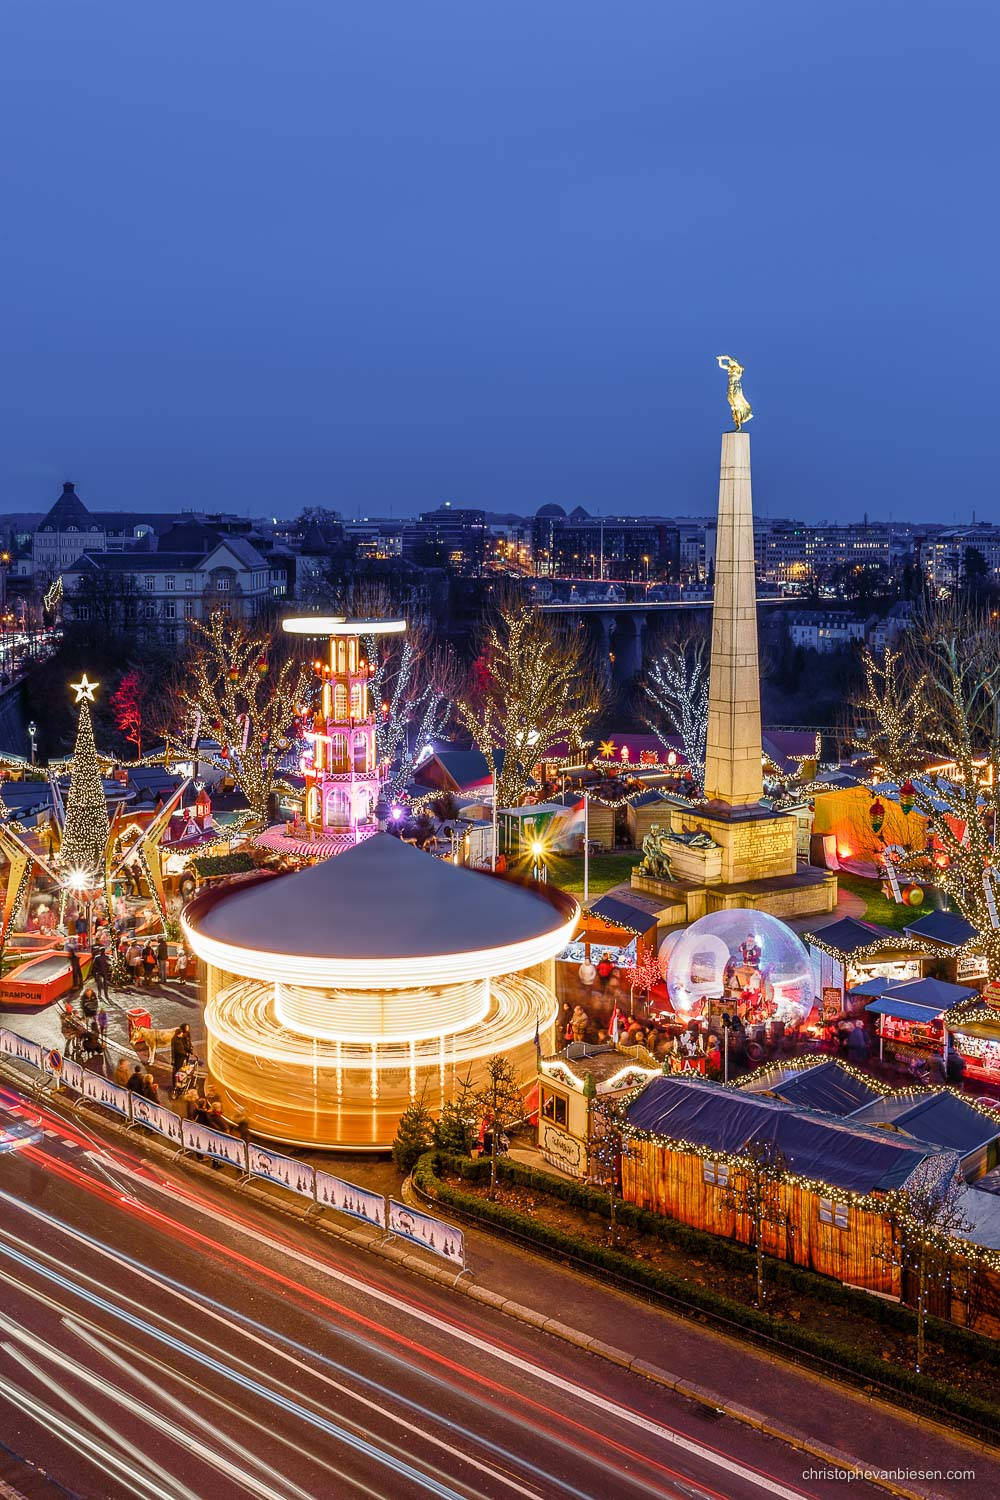 Christmas in Luxembourg - Luxembourg's Christmas market in full swing - 'Tis the Season